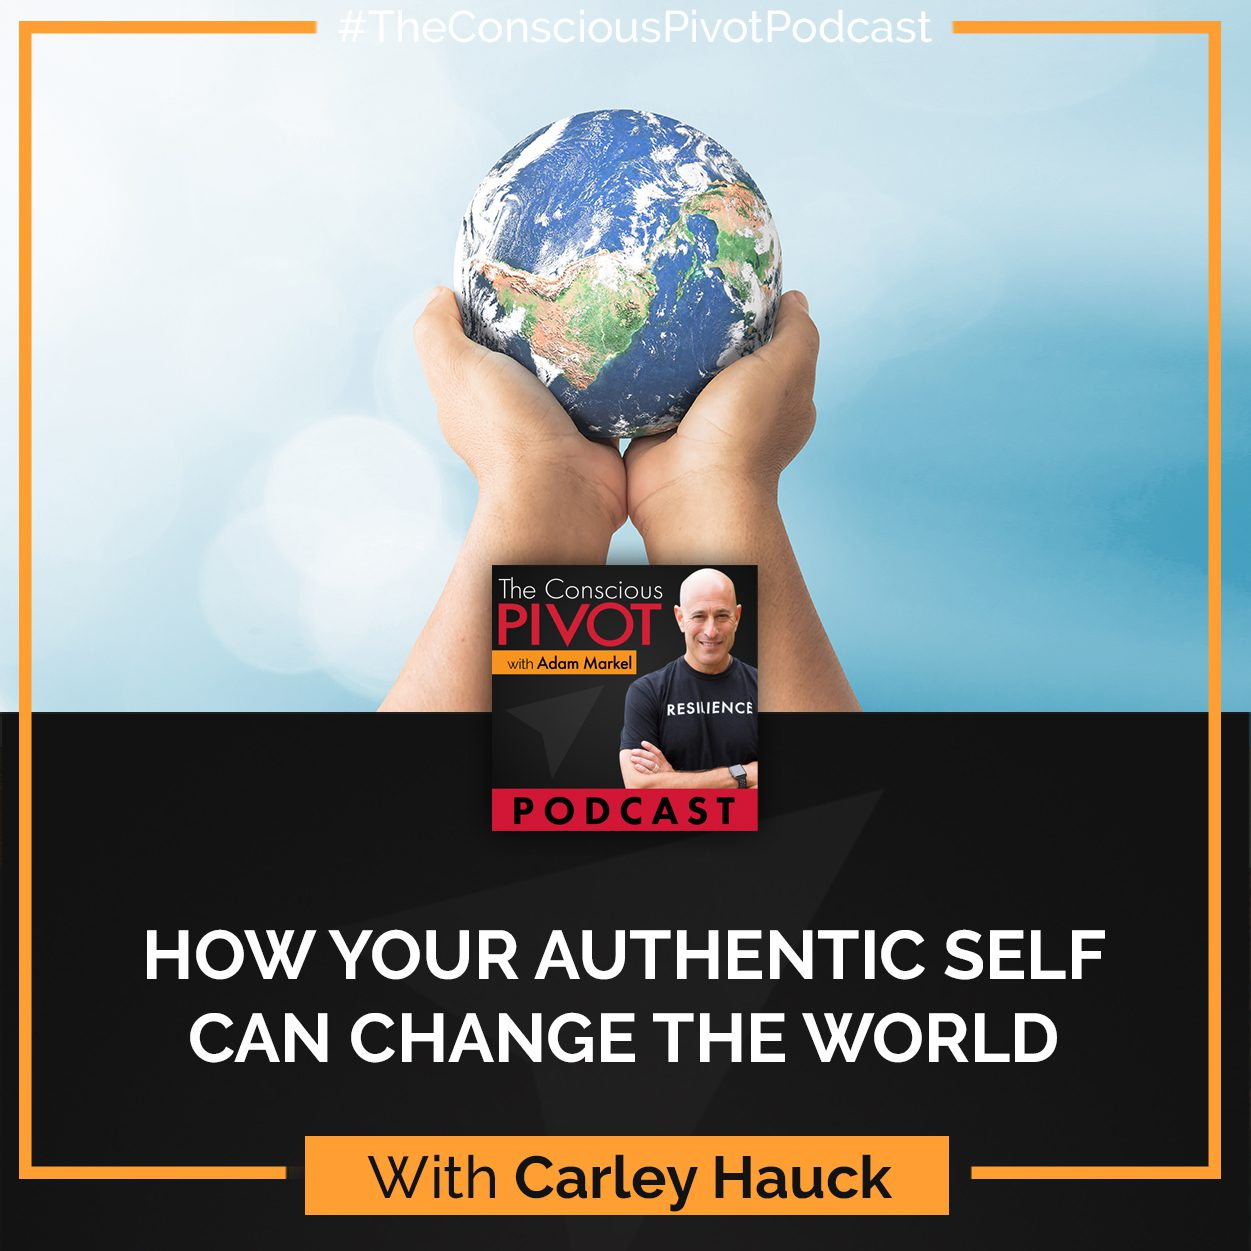 How Your Authentic Self Can Change the World